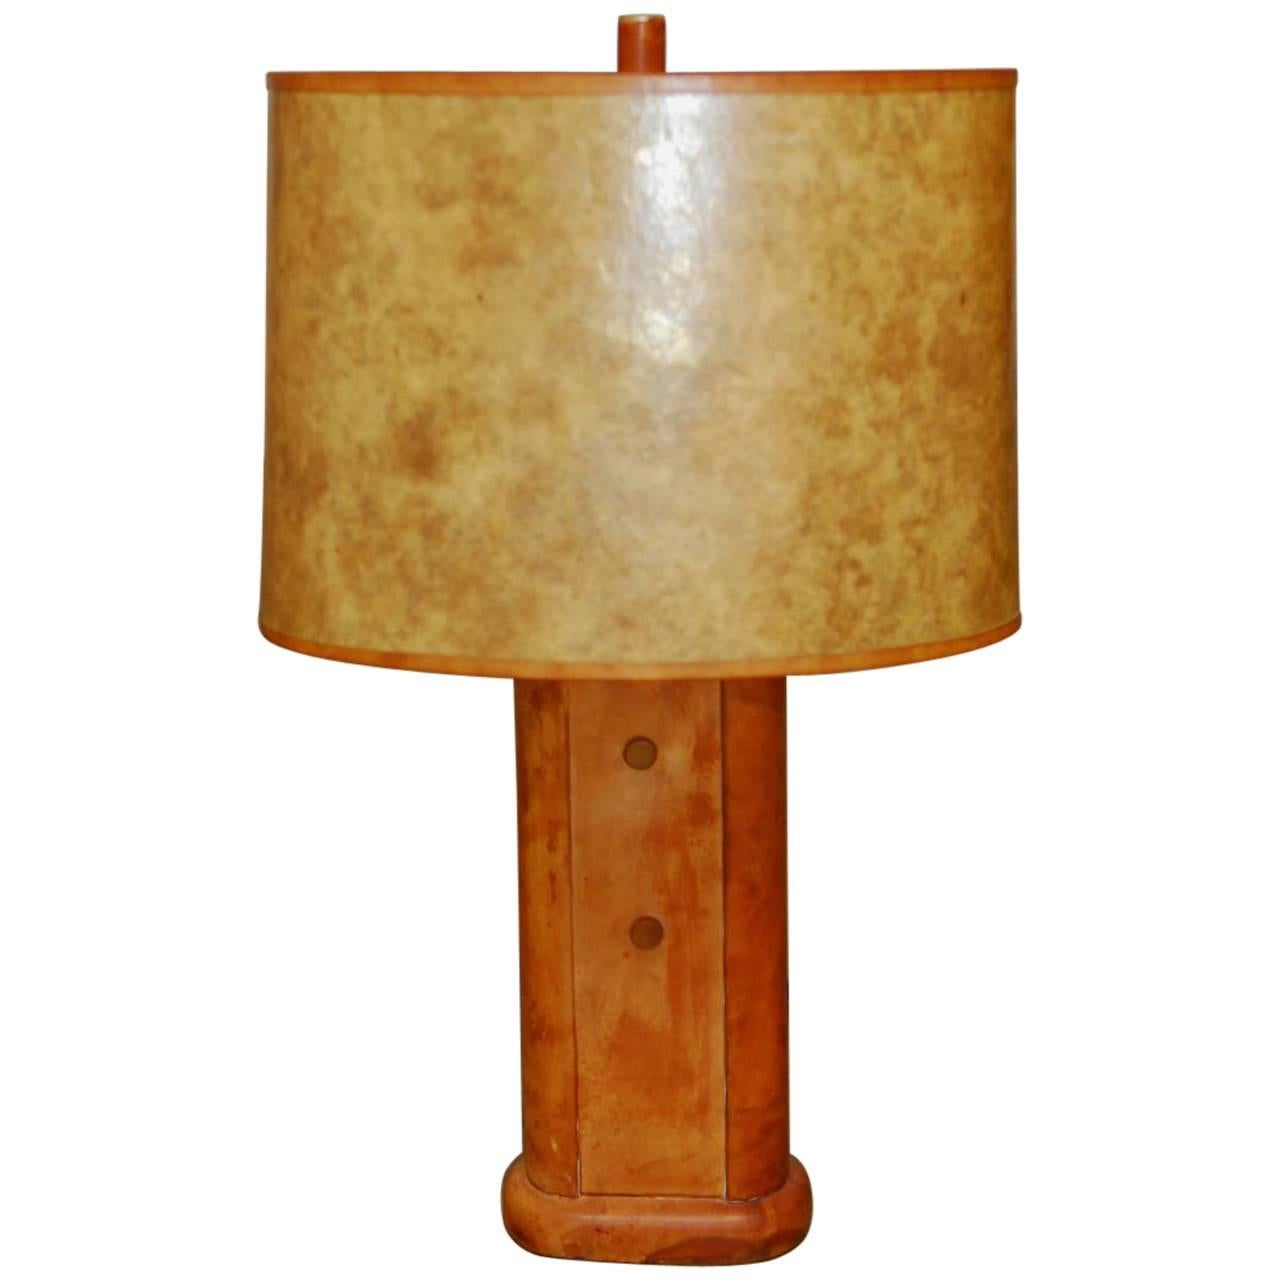 Art Deco Patinated Leather Table Lamp in the Manner of William Billy Haines